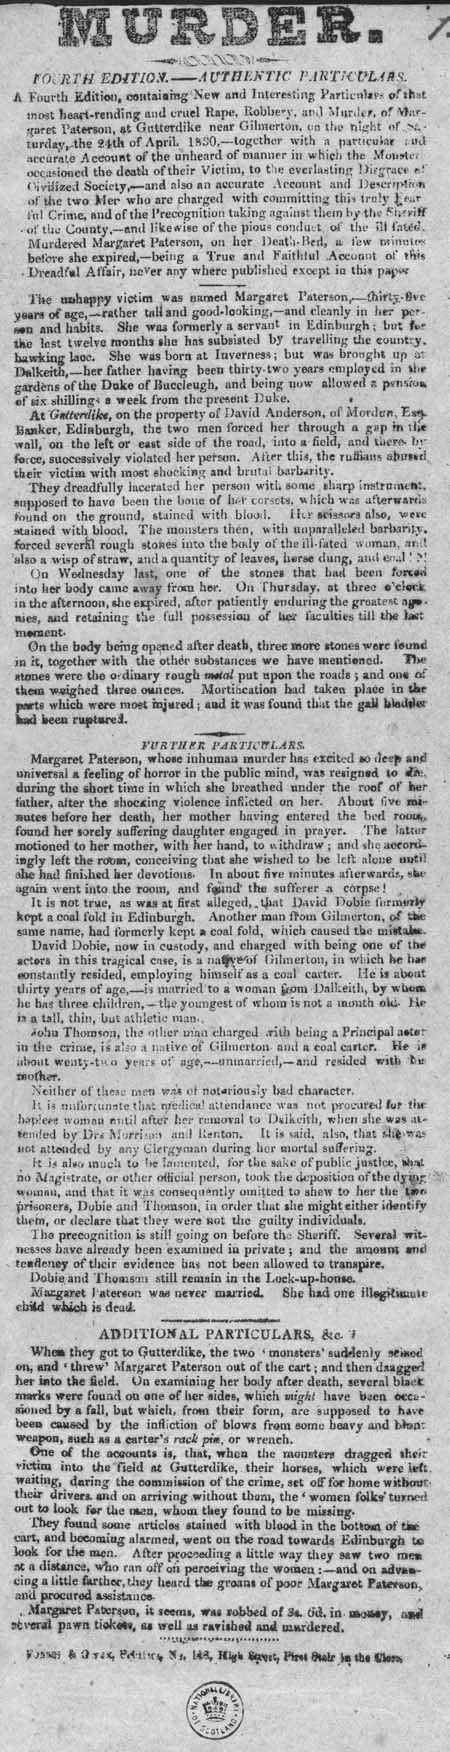 Broadside entitled 'Murder. Fourth Edition. - Authentic Particulars'